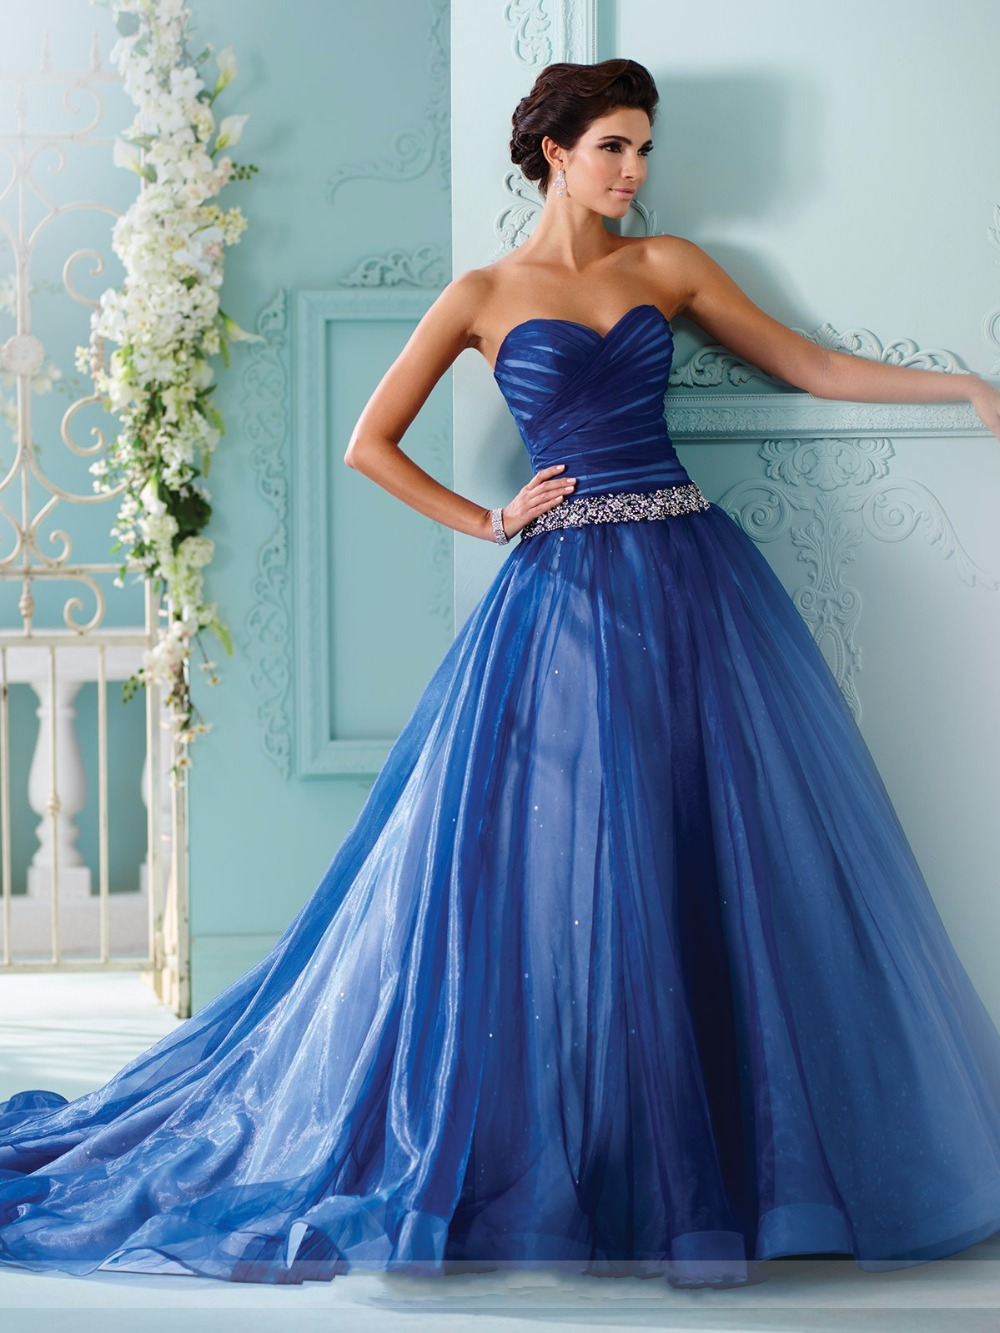 royal blue blushing pink colorful ball gown wedding dresses with color 2017 vestidos de novia beaded belt non white bridal gowns